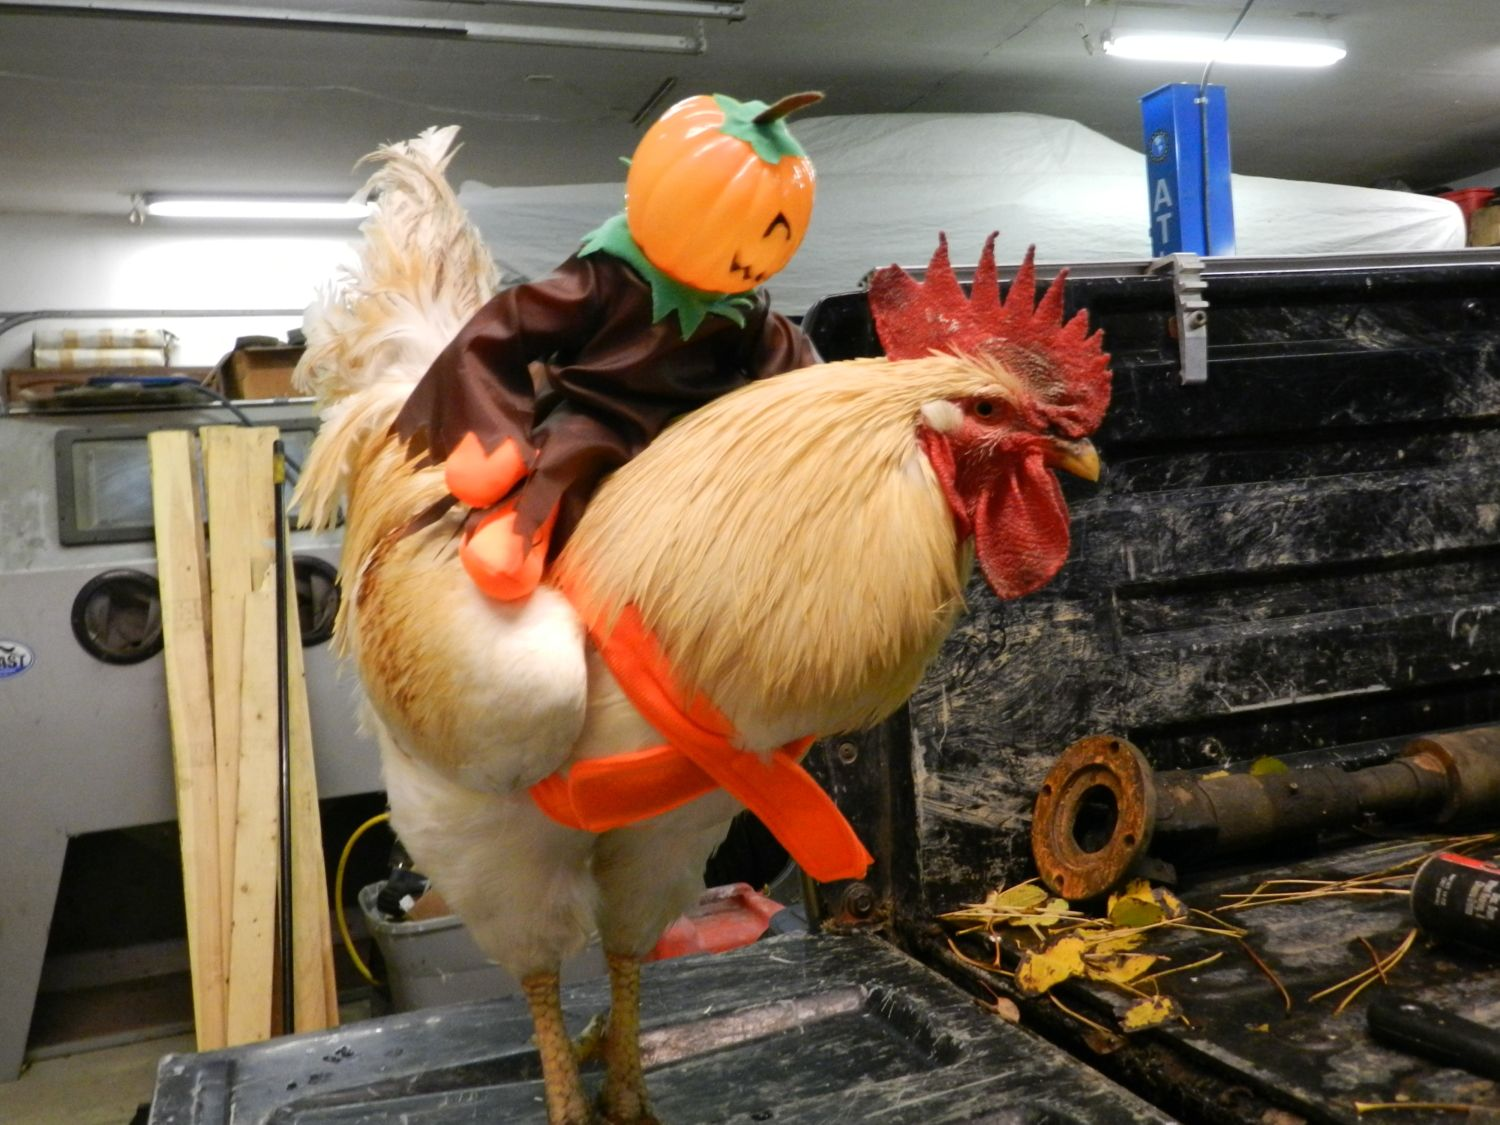 Nats Chickens likes this. & Chicken Costumes - Share your pictures! | Page 6 | BackYard Chickens